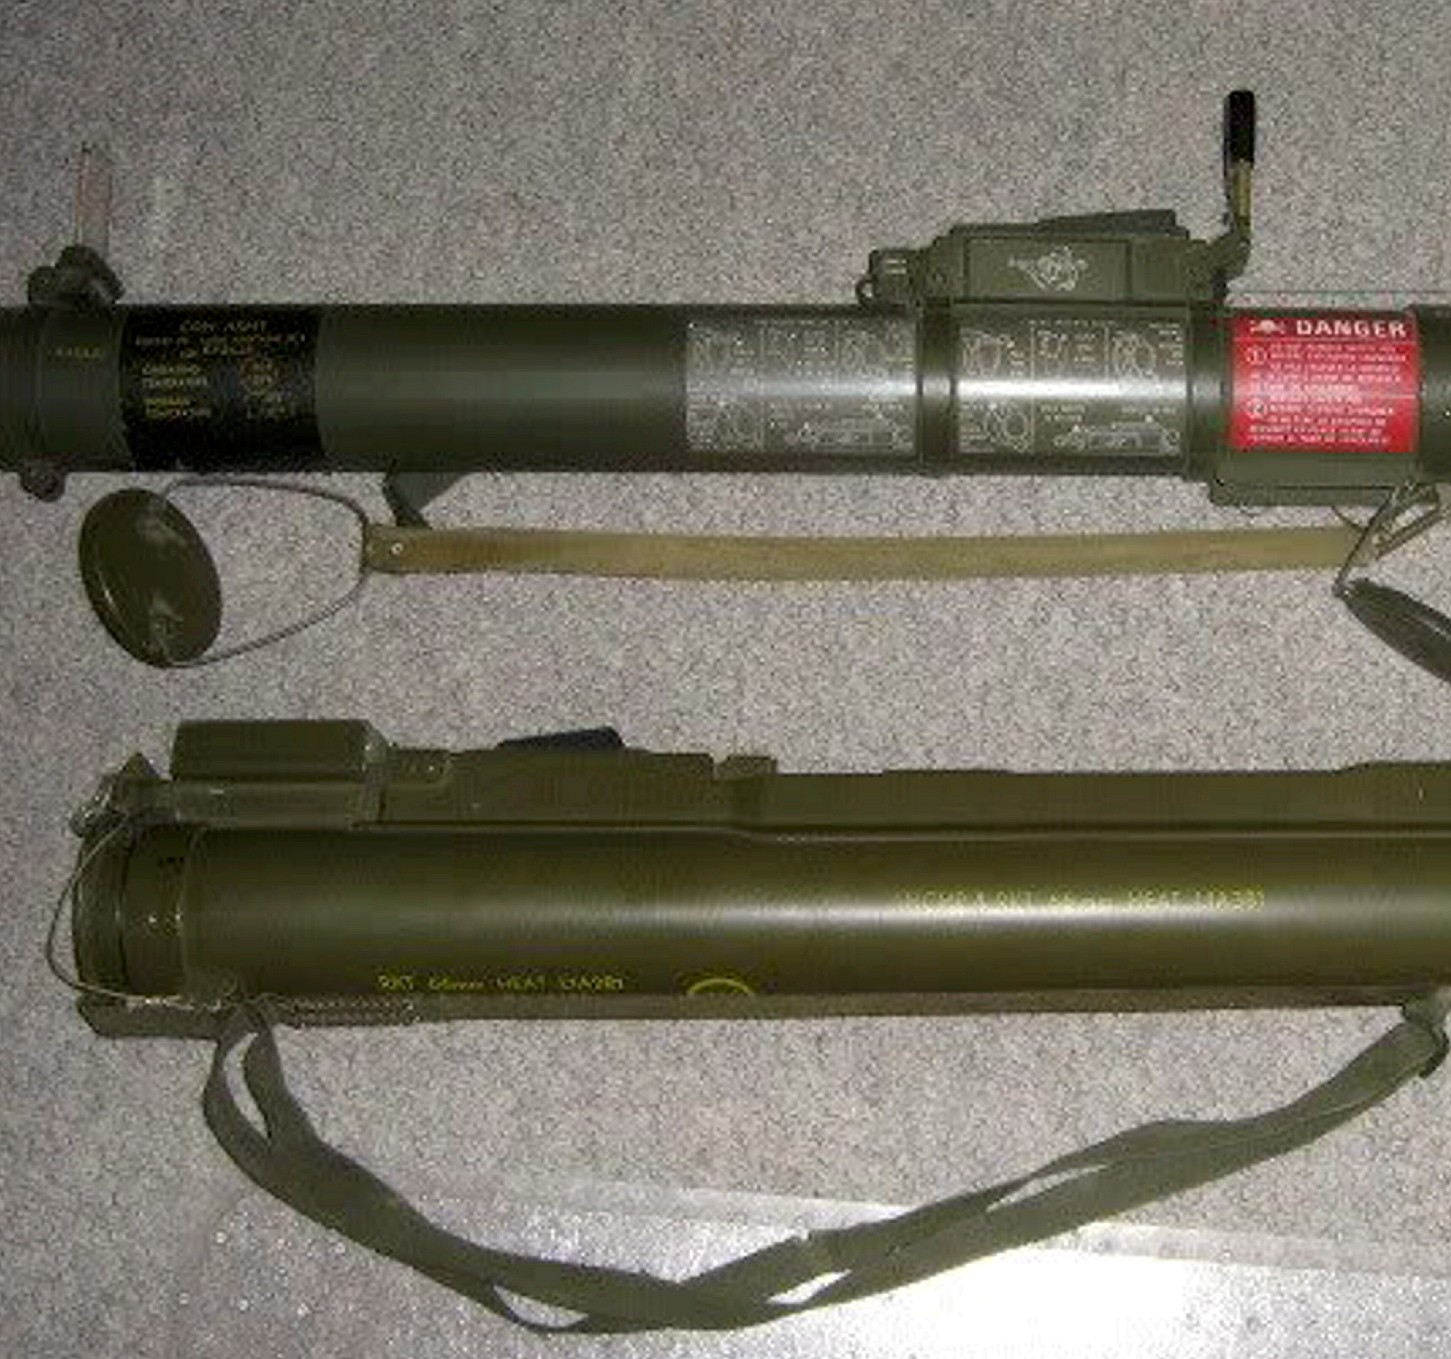 The rocket launcher found hidden underneath Mark Chalcroft's bed. The former soldier kept it as a memento of his service in the Territorial Army